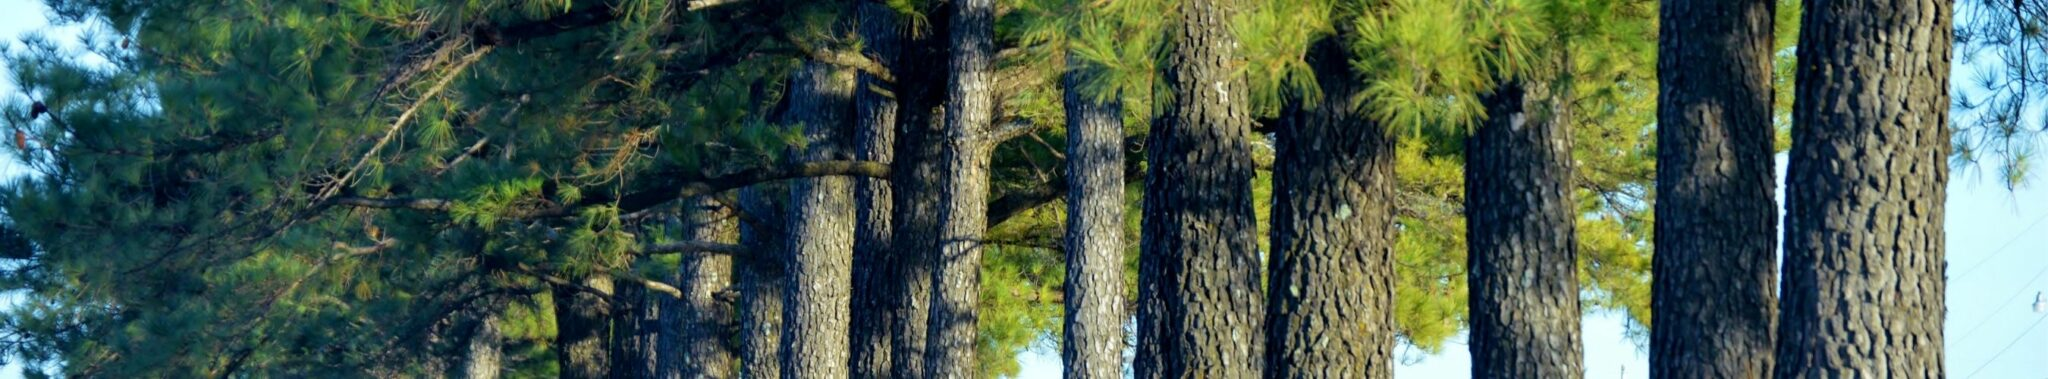 row of pines Trees Department Banner Fall